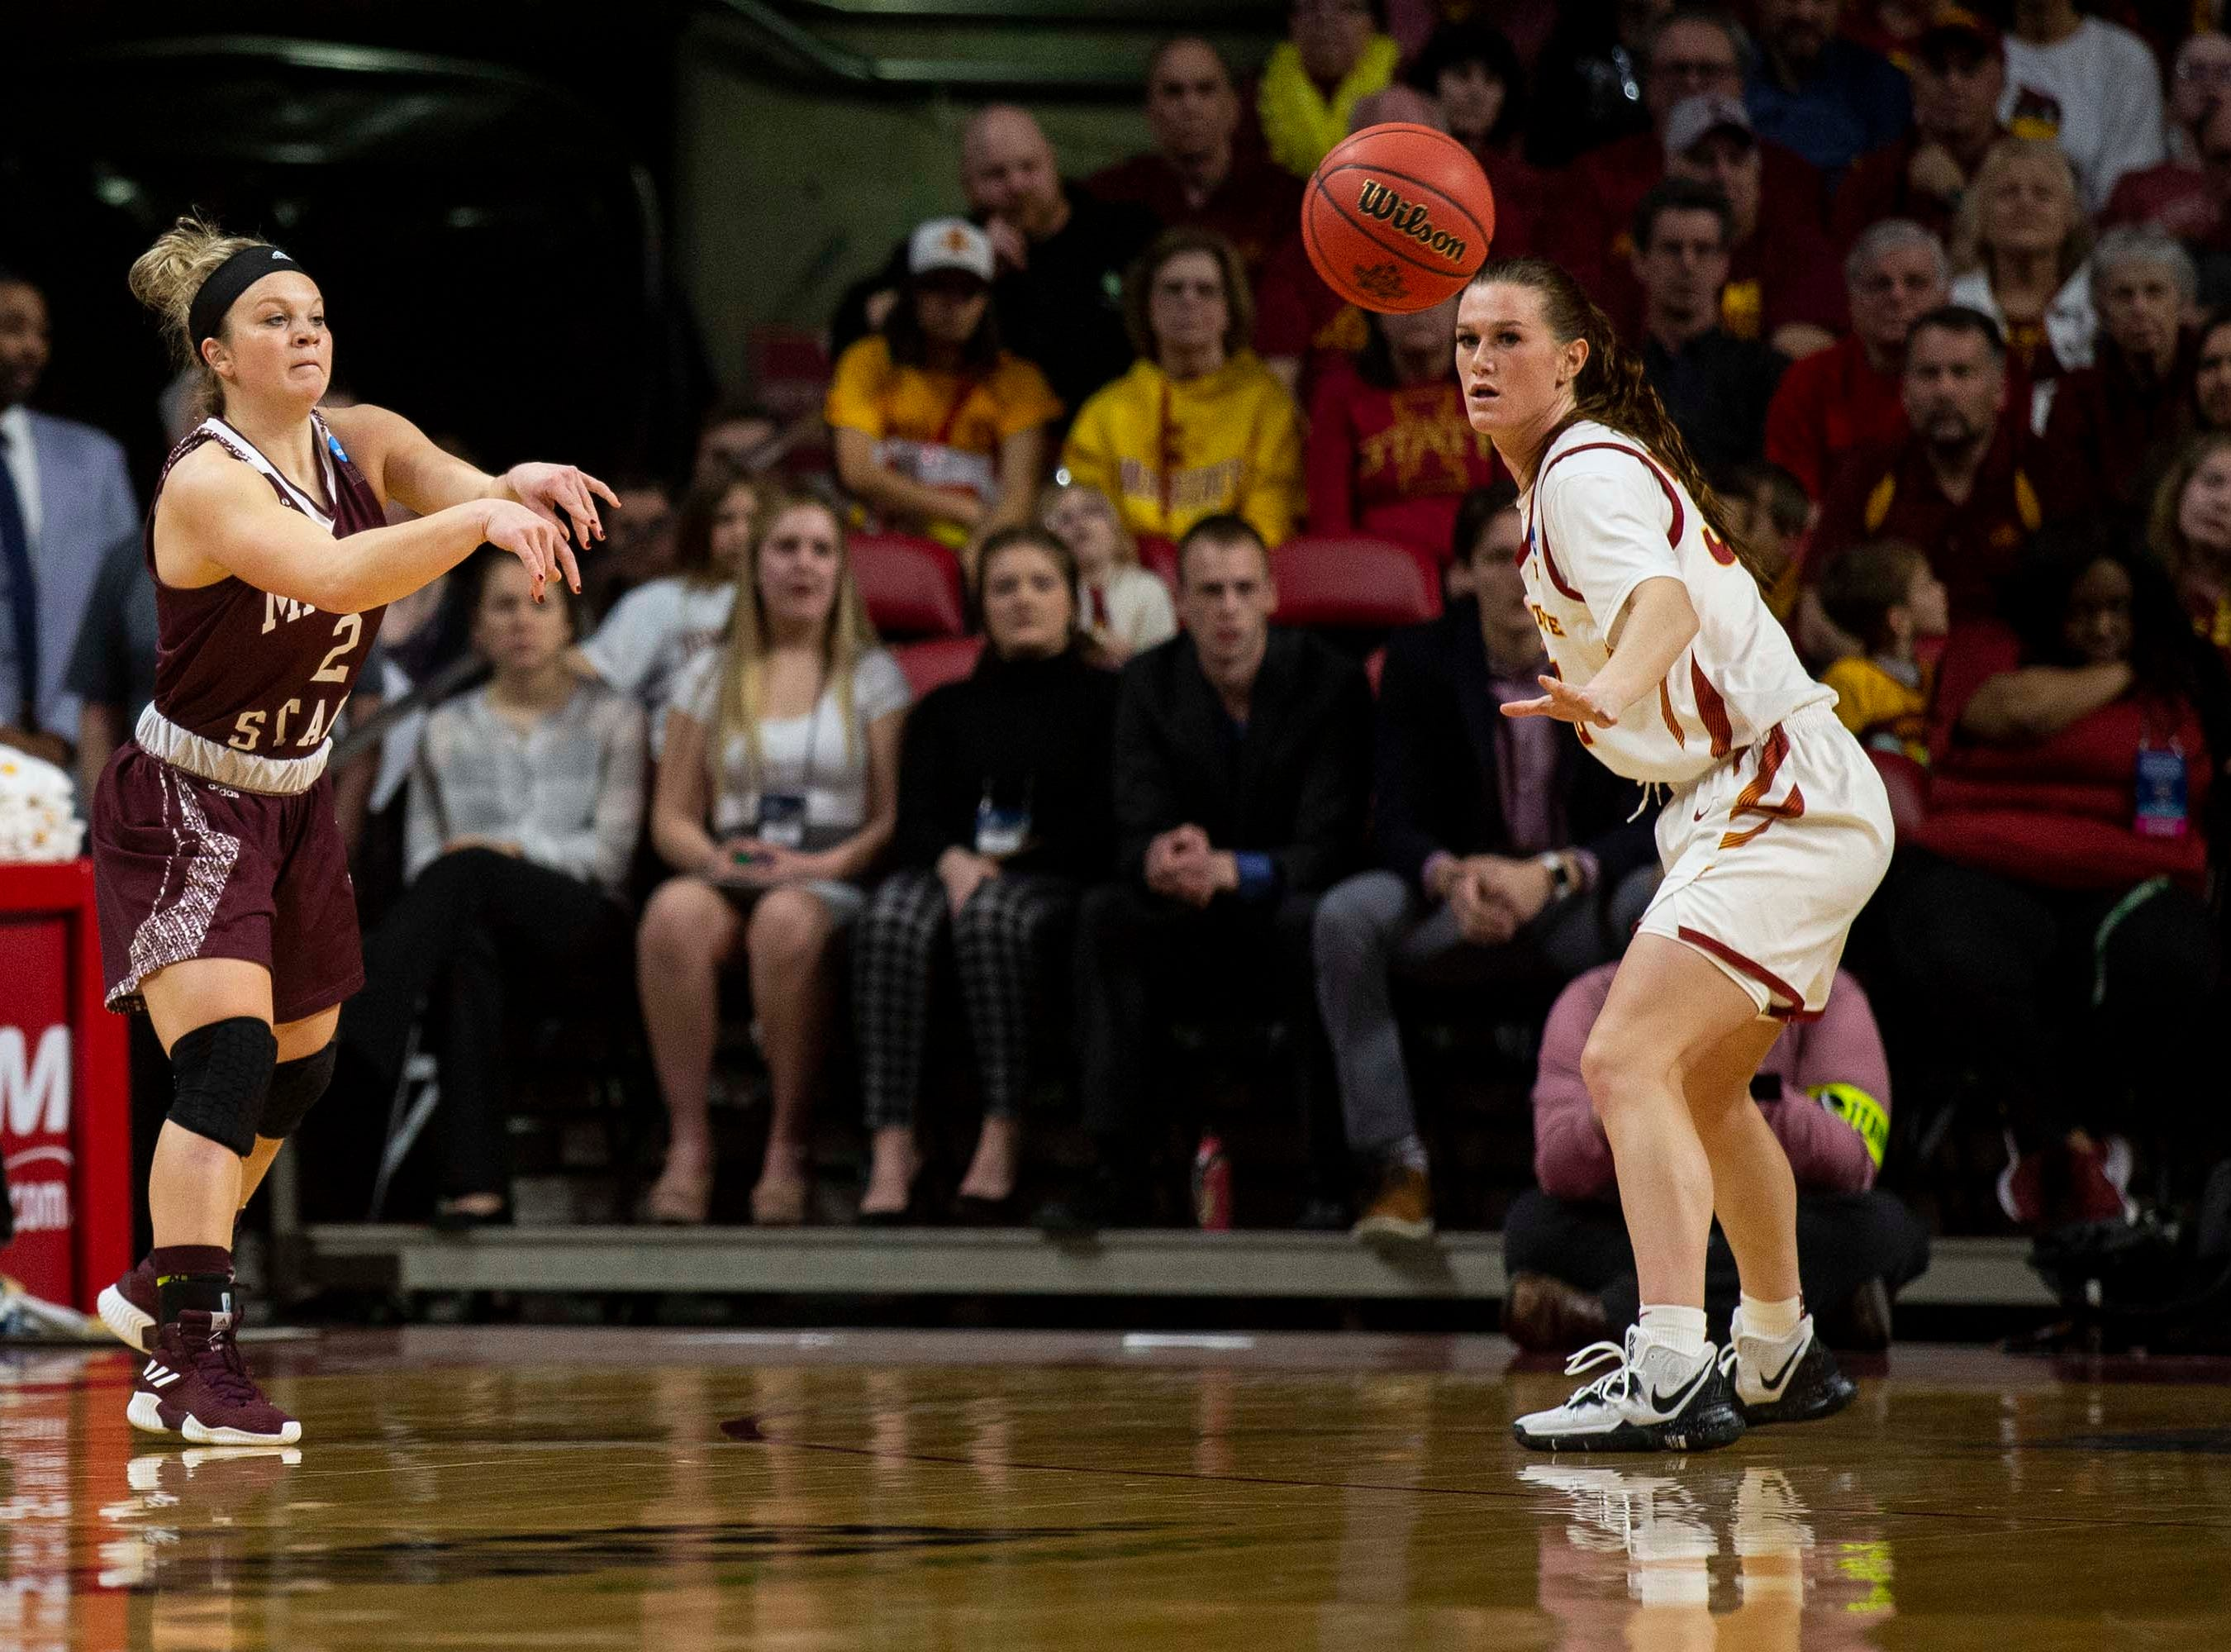 Missouri State's Elle Ruffridge makes a pass during the NCAA Tournament second-round match-up between Iowa State and Missouri State on Monday, March 25, 2019, in Hilton Coliseum, in Ames, Iowa.